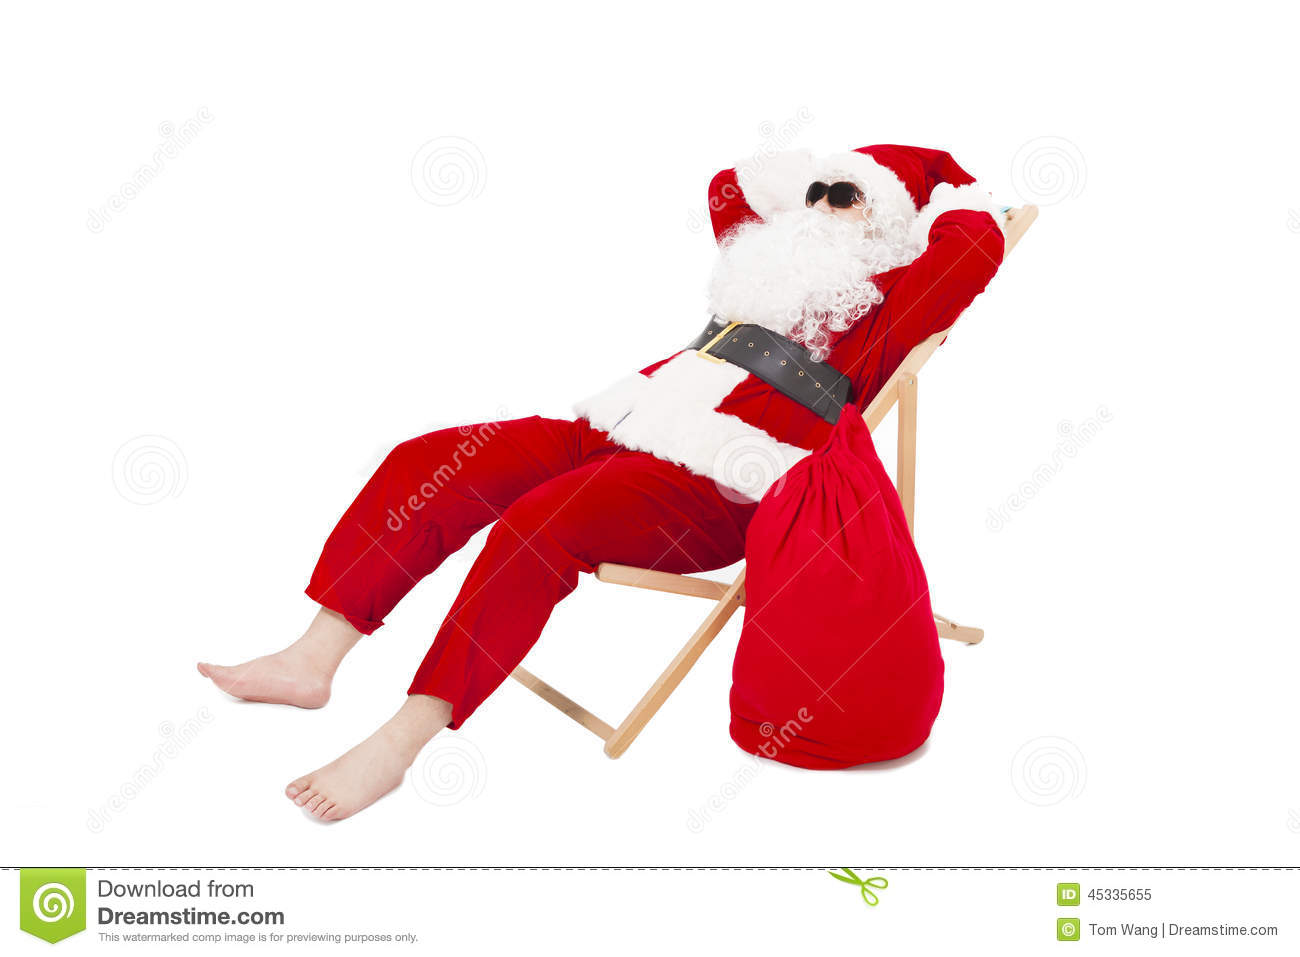 Merry Christmas Santa Claus Sitting A Chair With Gift Bag Stock Image